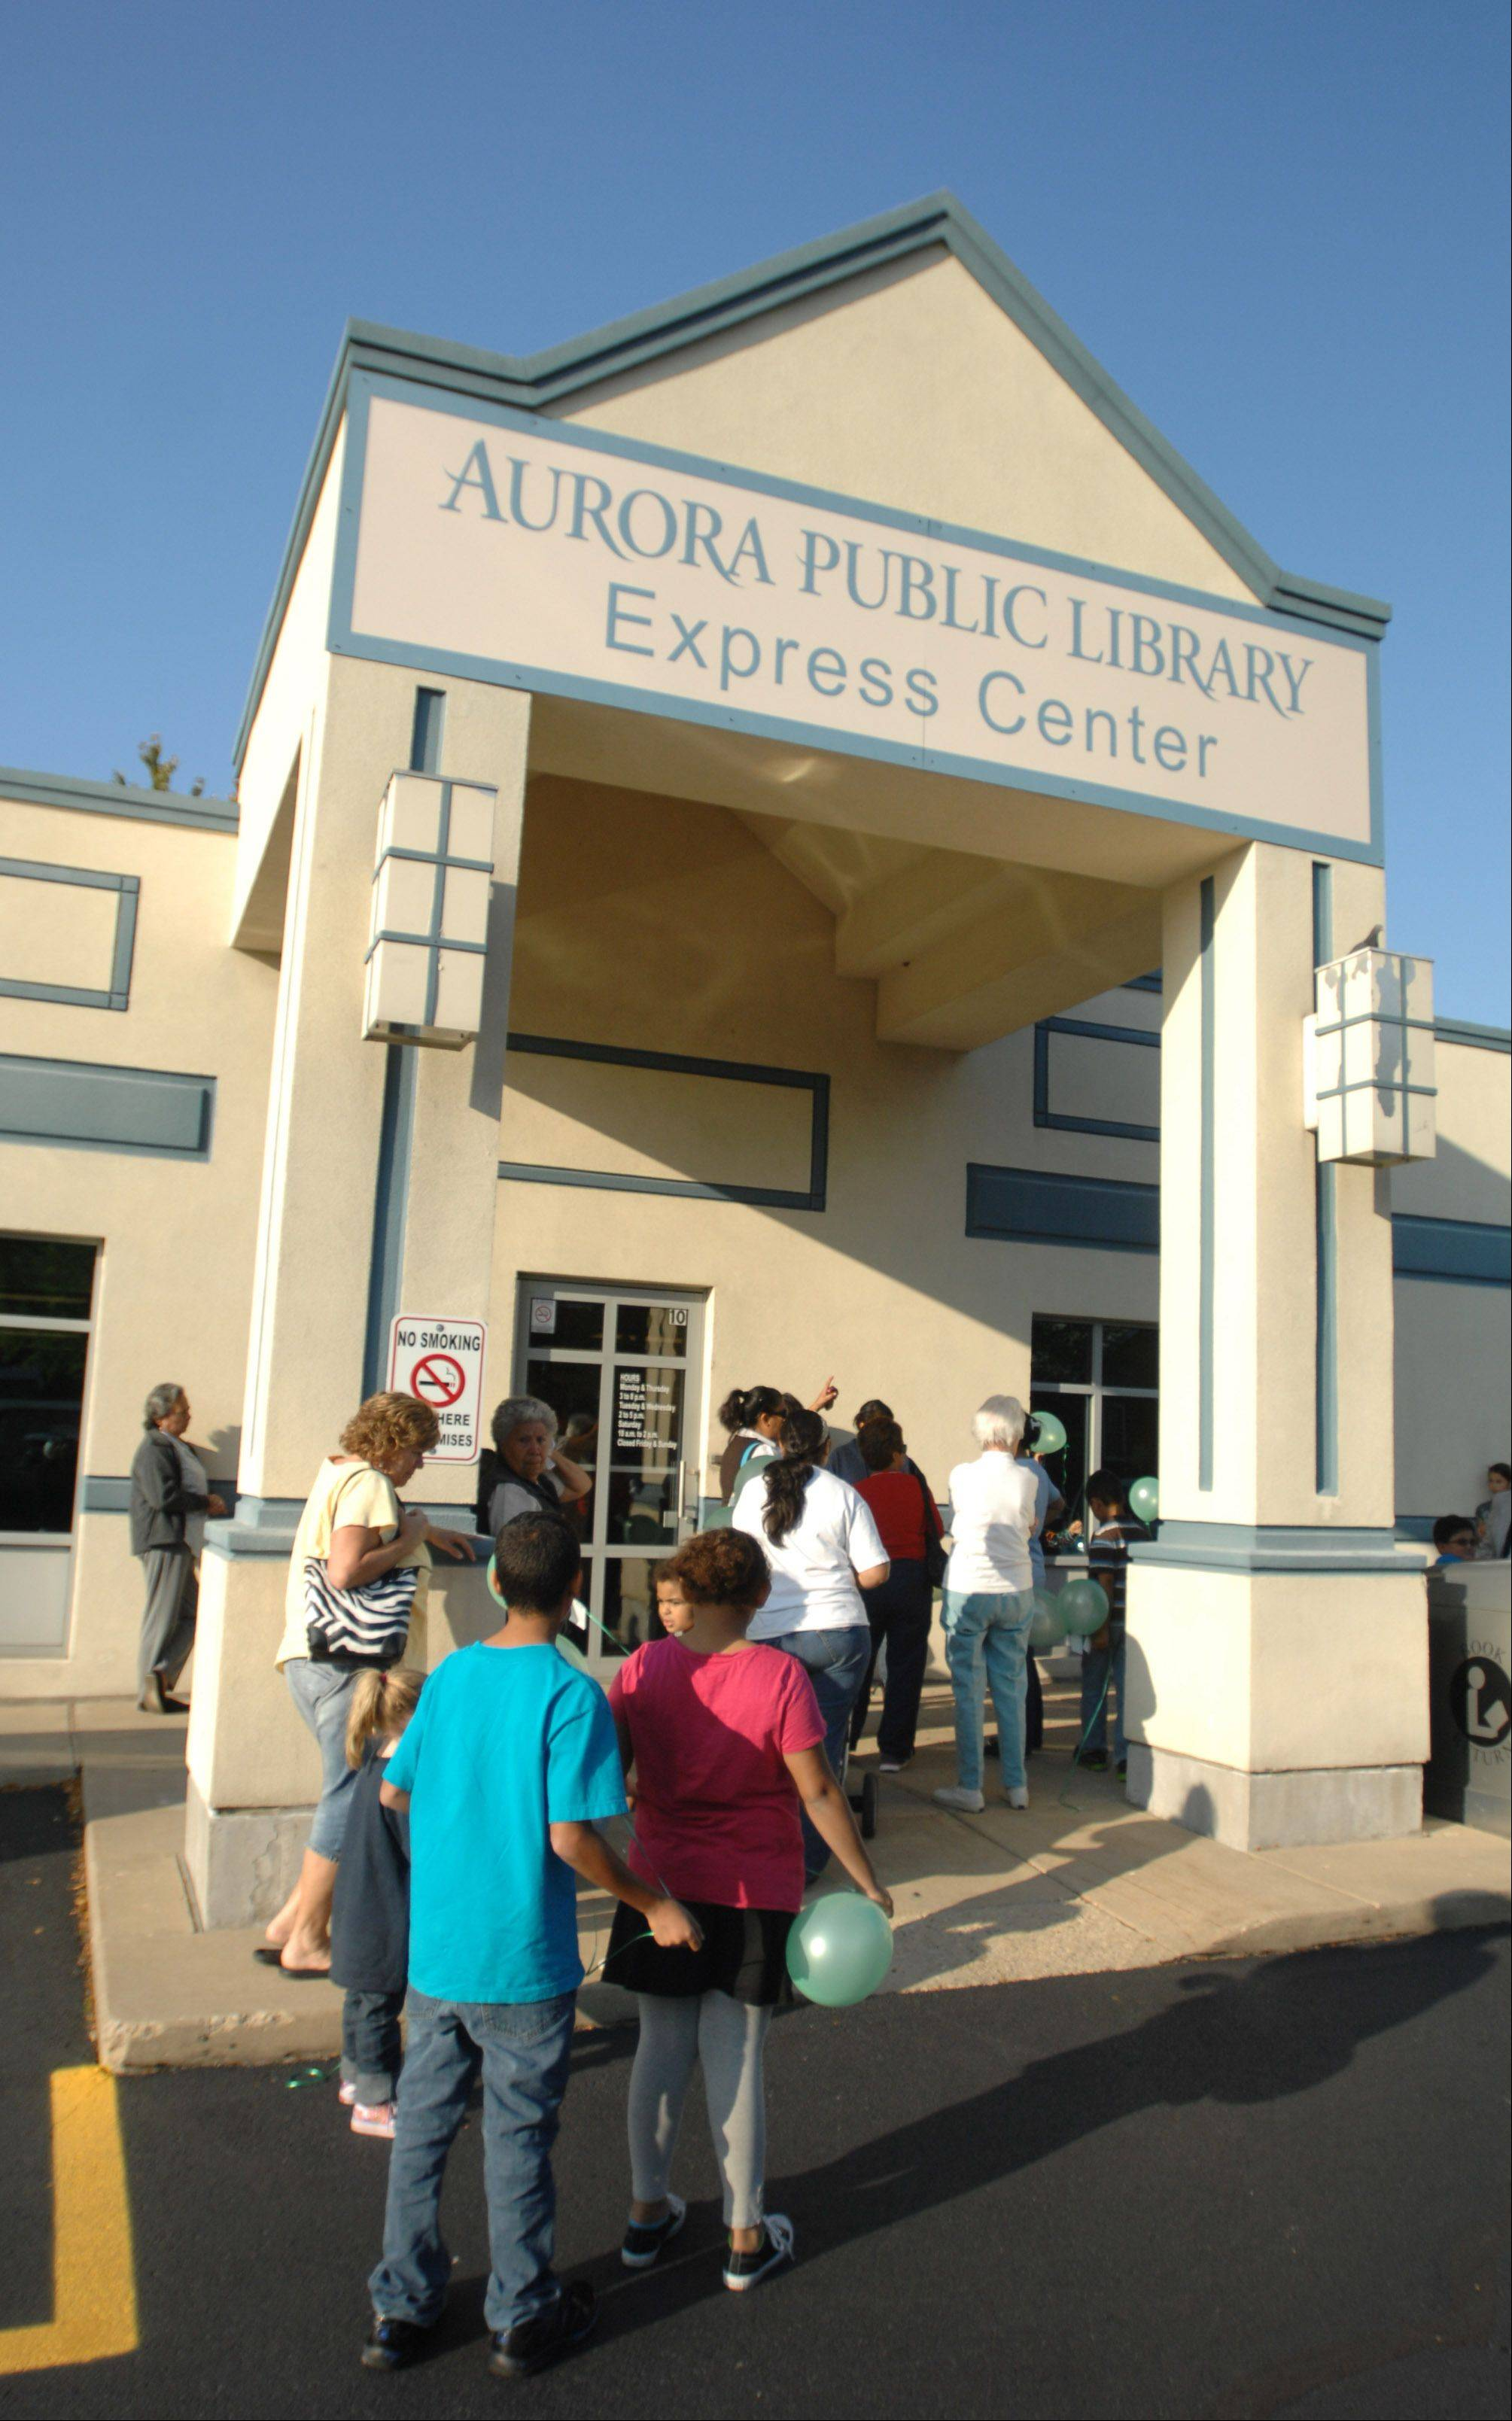 Express Center brings Aurora library services to neighborhood